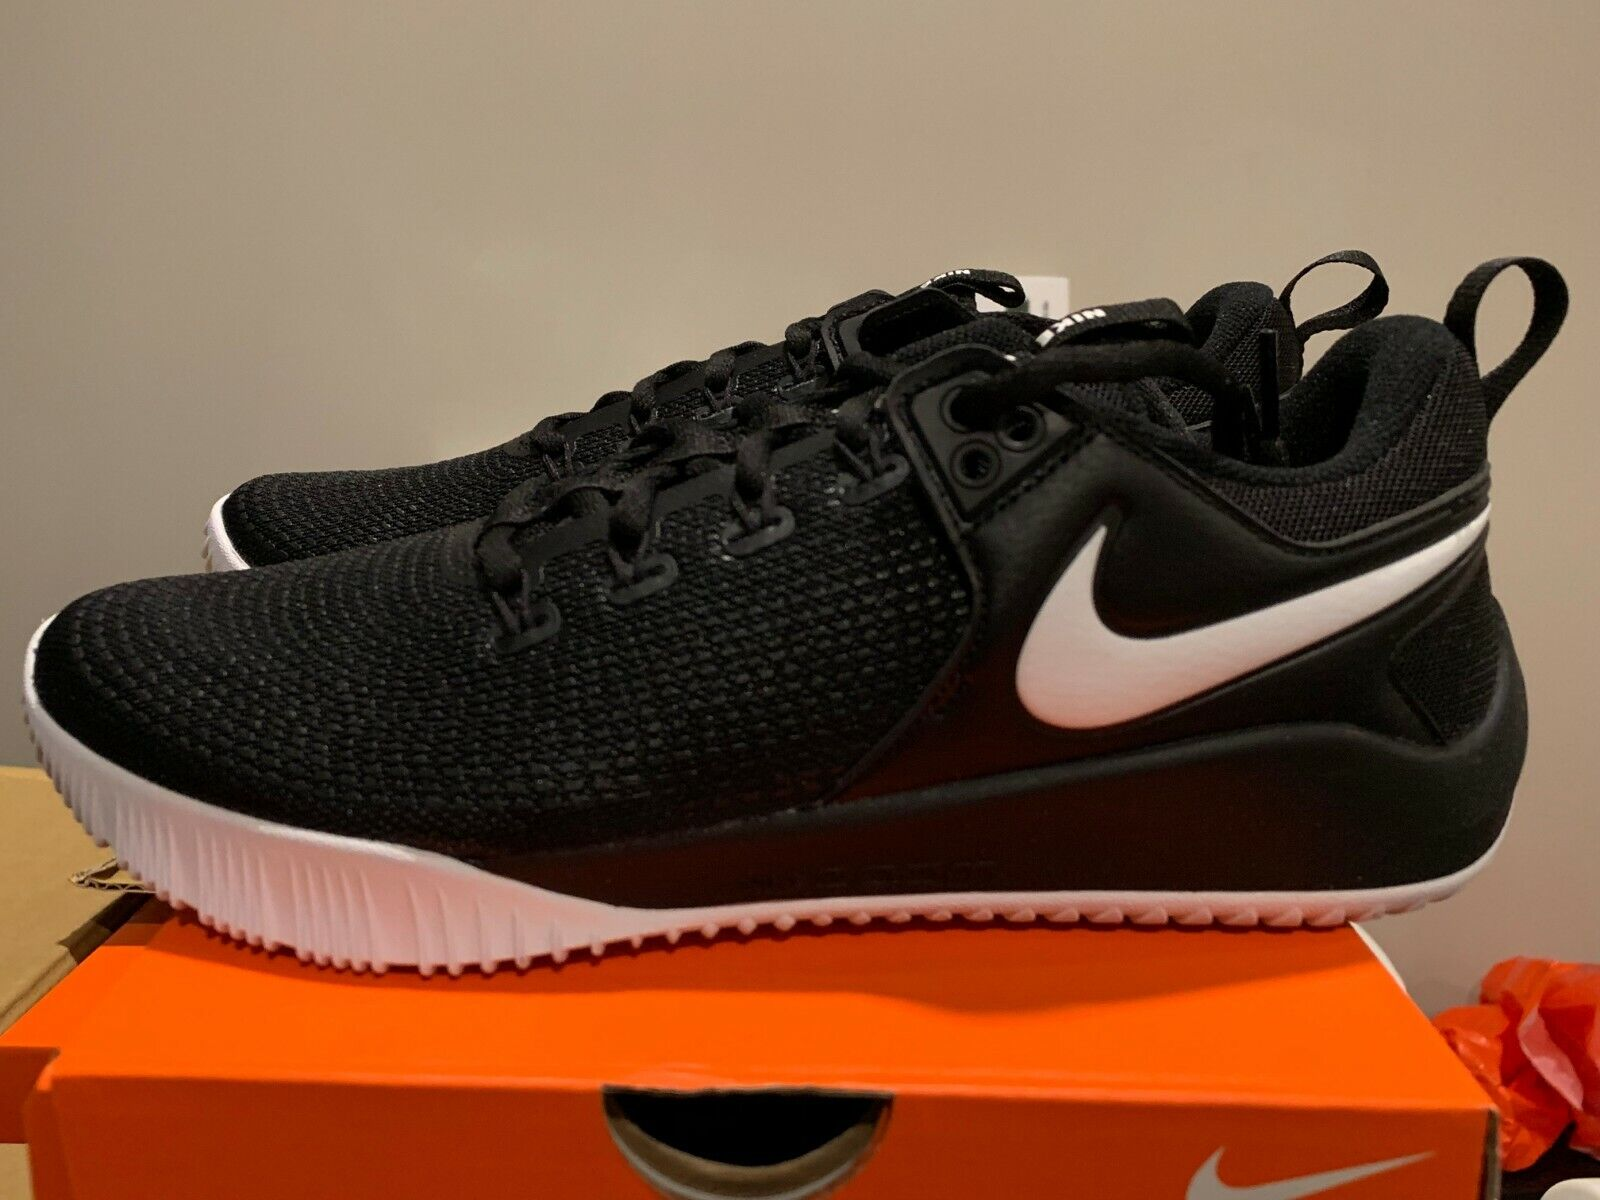 NIKE Women's Zoom Hyperace 2 - Volleyball Shoes - Black/White - New In Box / NIB